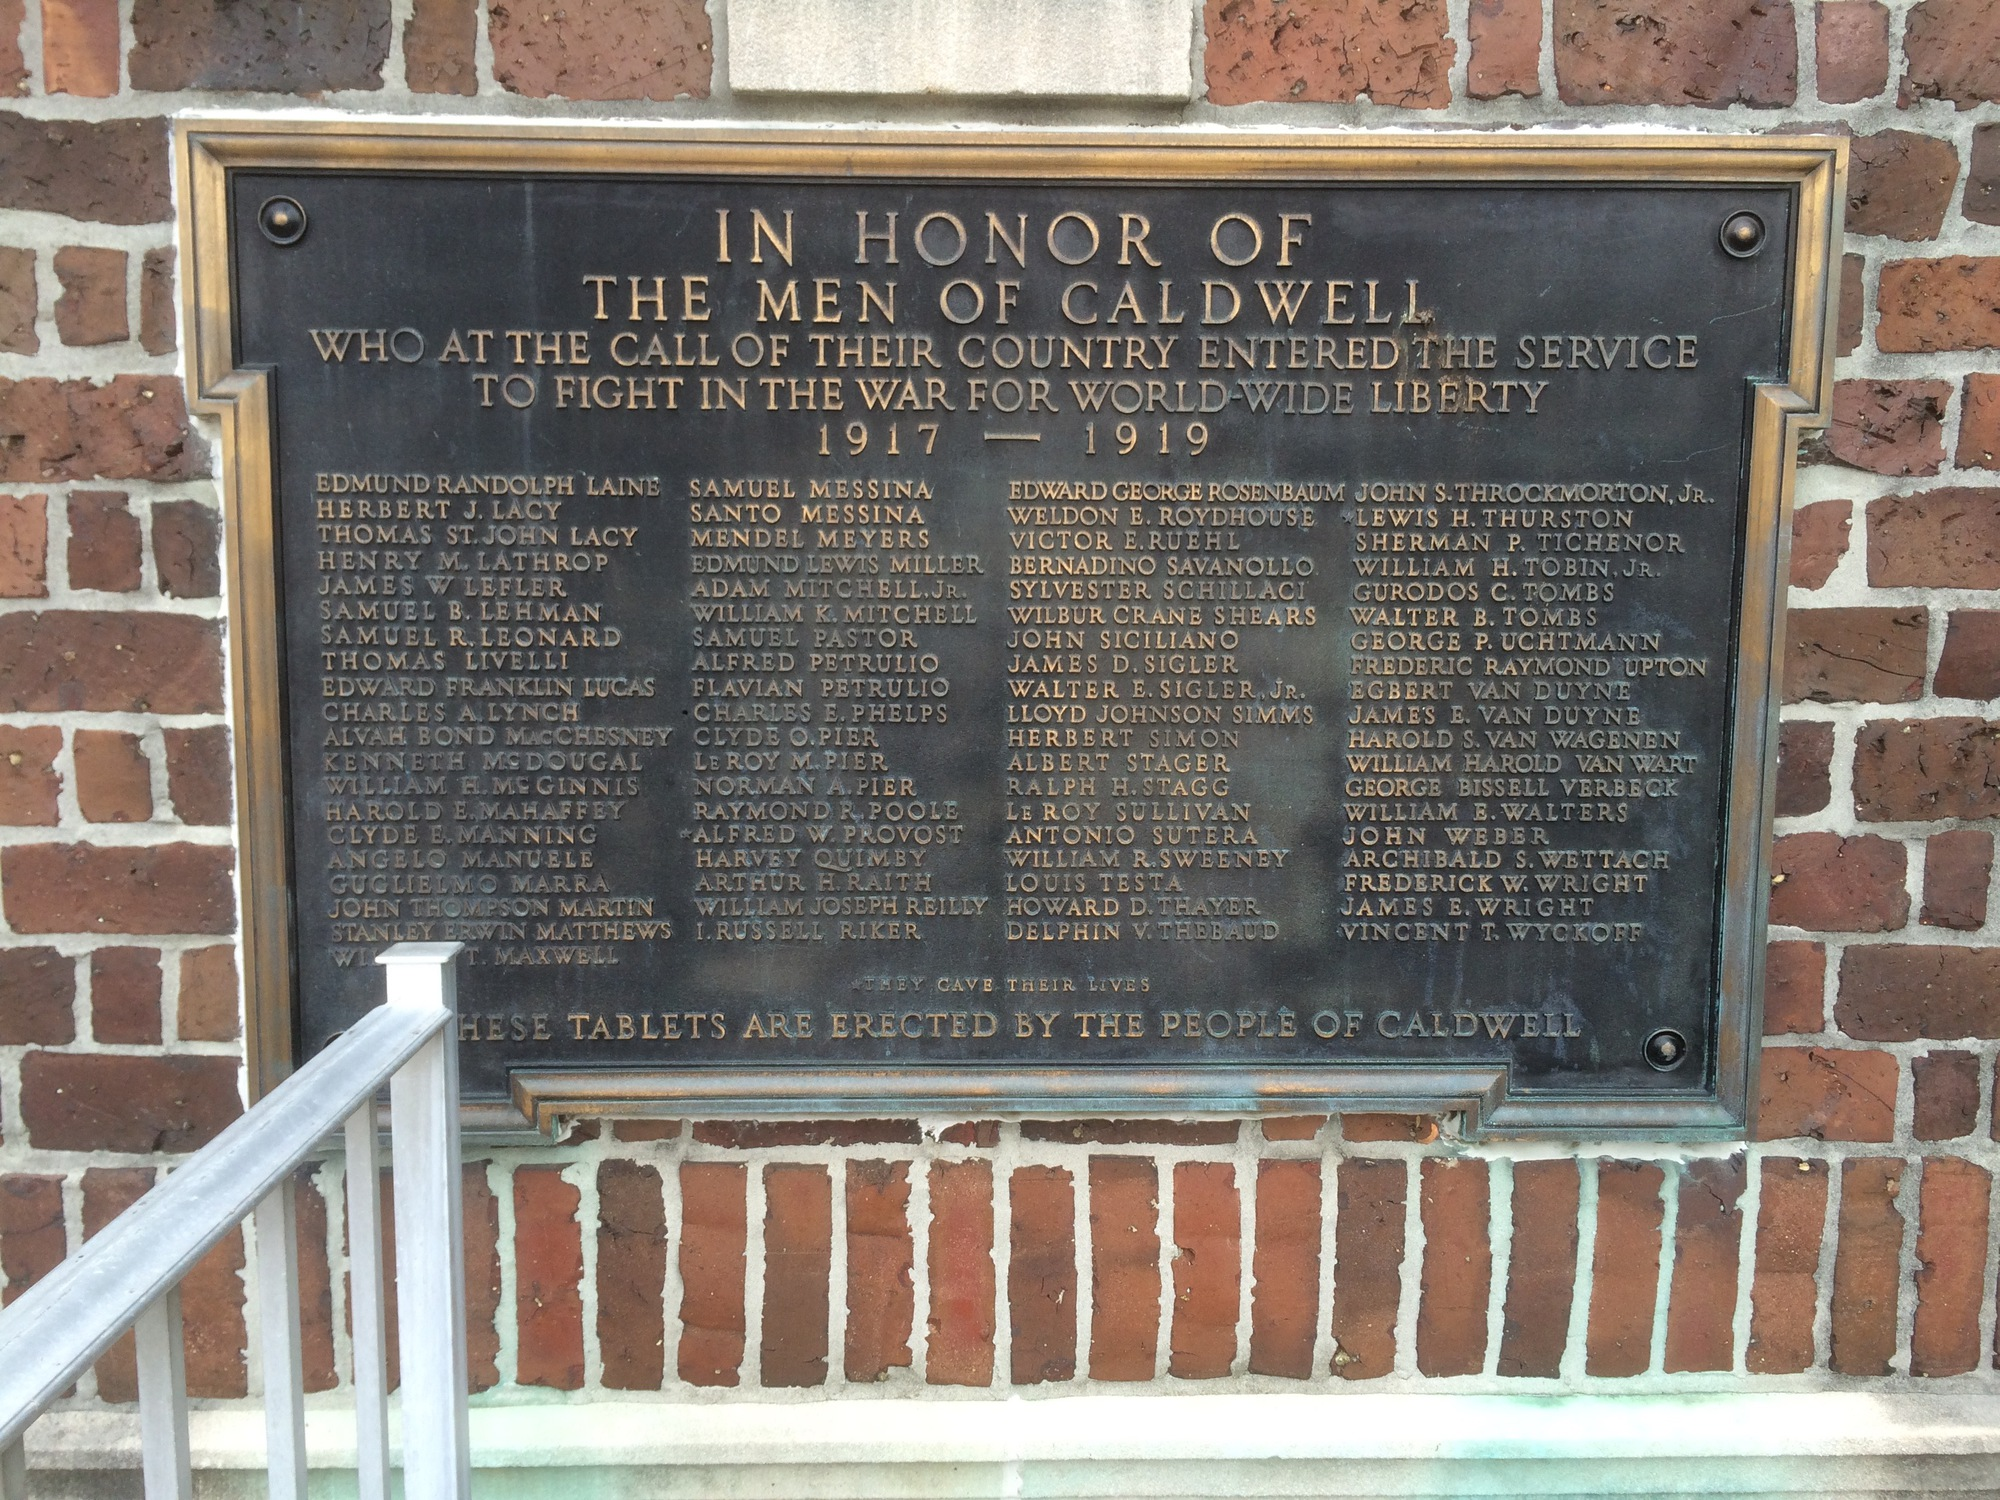 Caldwell World War I Memorial Plaques (NJ)